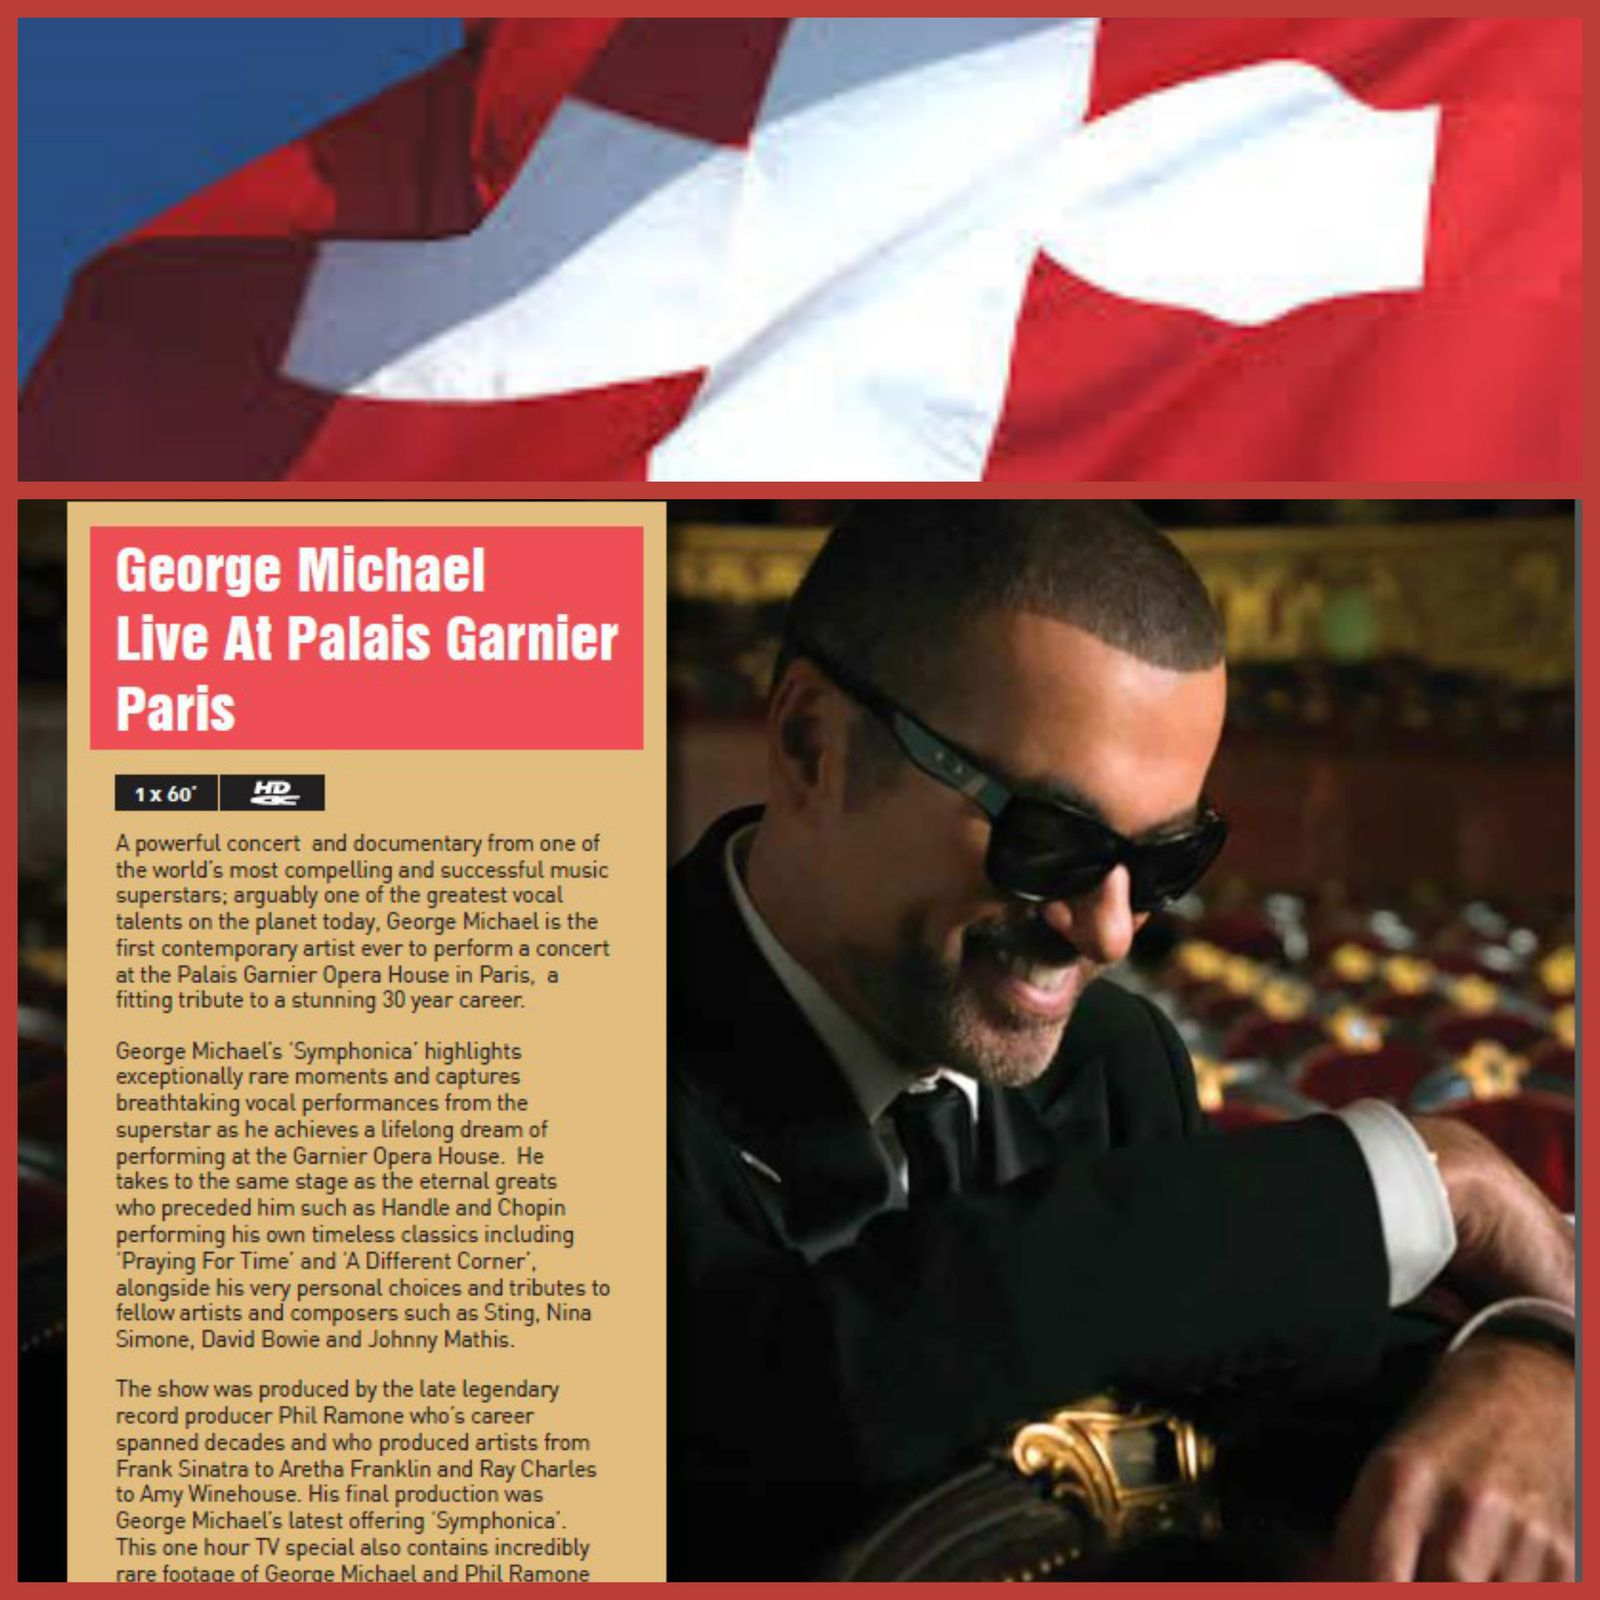 SYMPHONICA LE DOCUMENTAIRE * SUISSE LE 26 AVRIL *